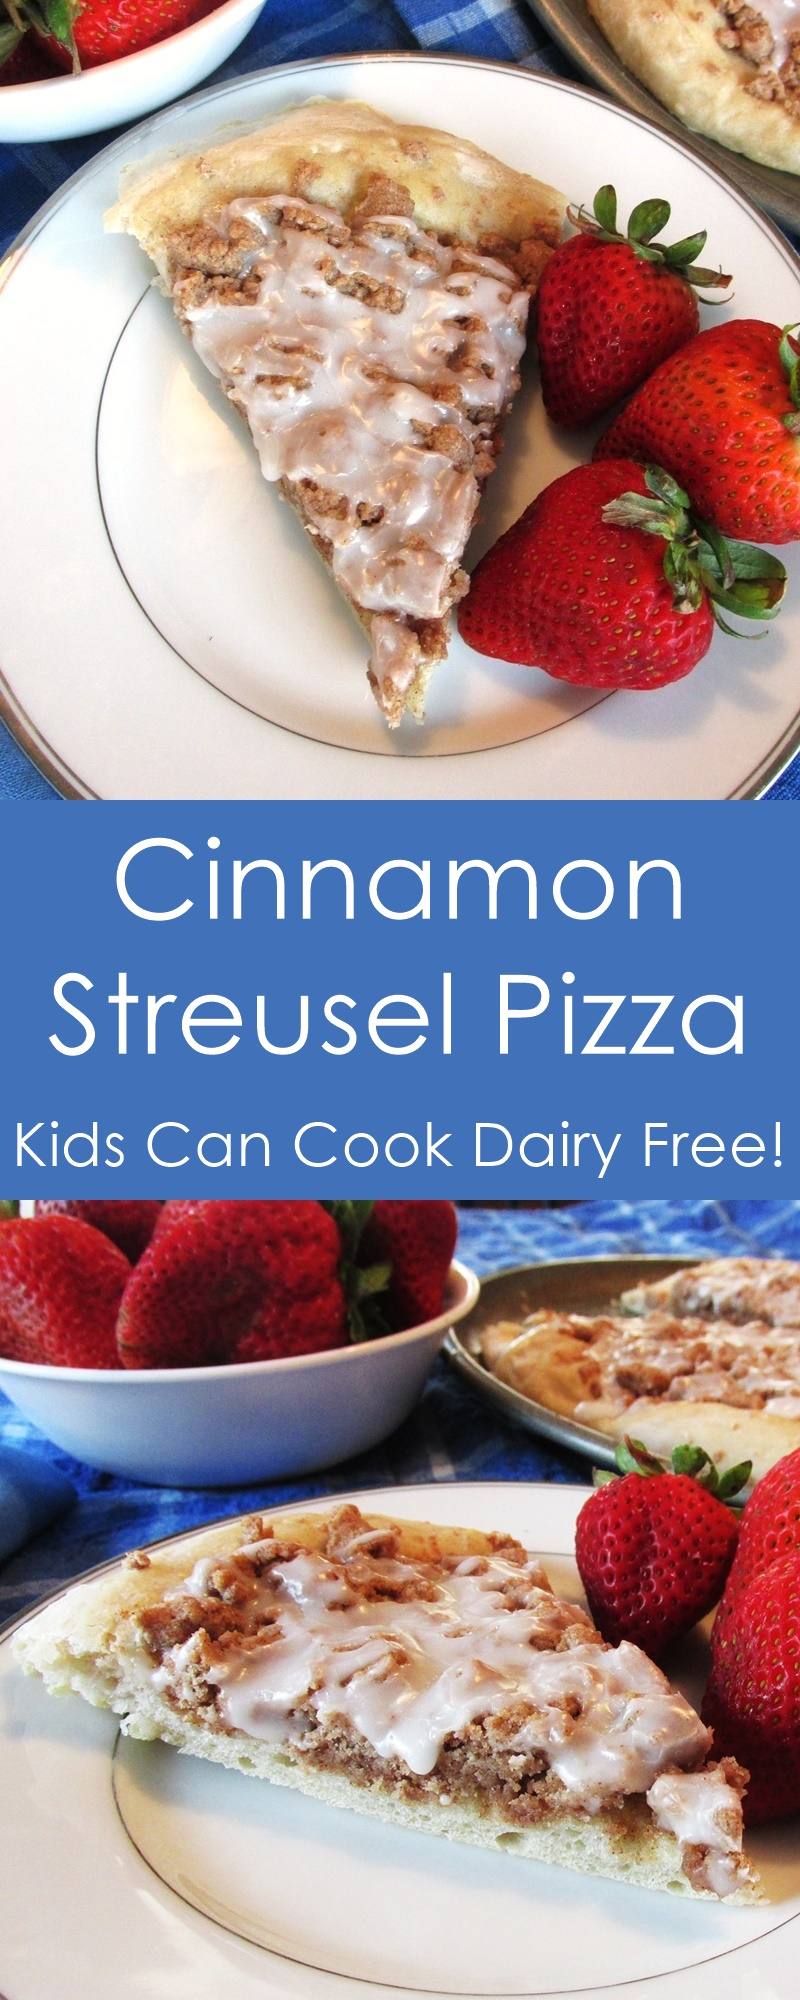 Vegan Cinnamon Streusel Dessert Pizza Recipe - a kids can cook dairy-free, egg-free, nut-free dessert! (gluten-free optional)